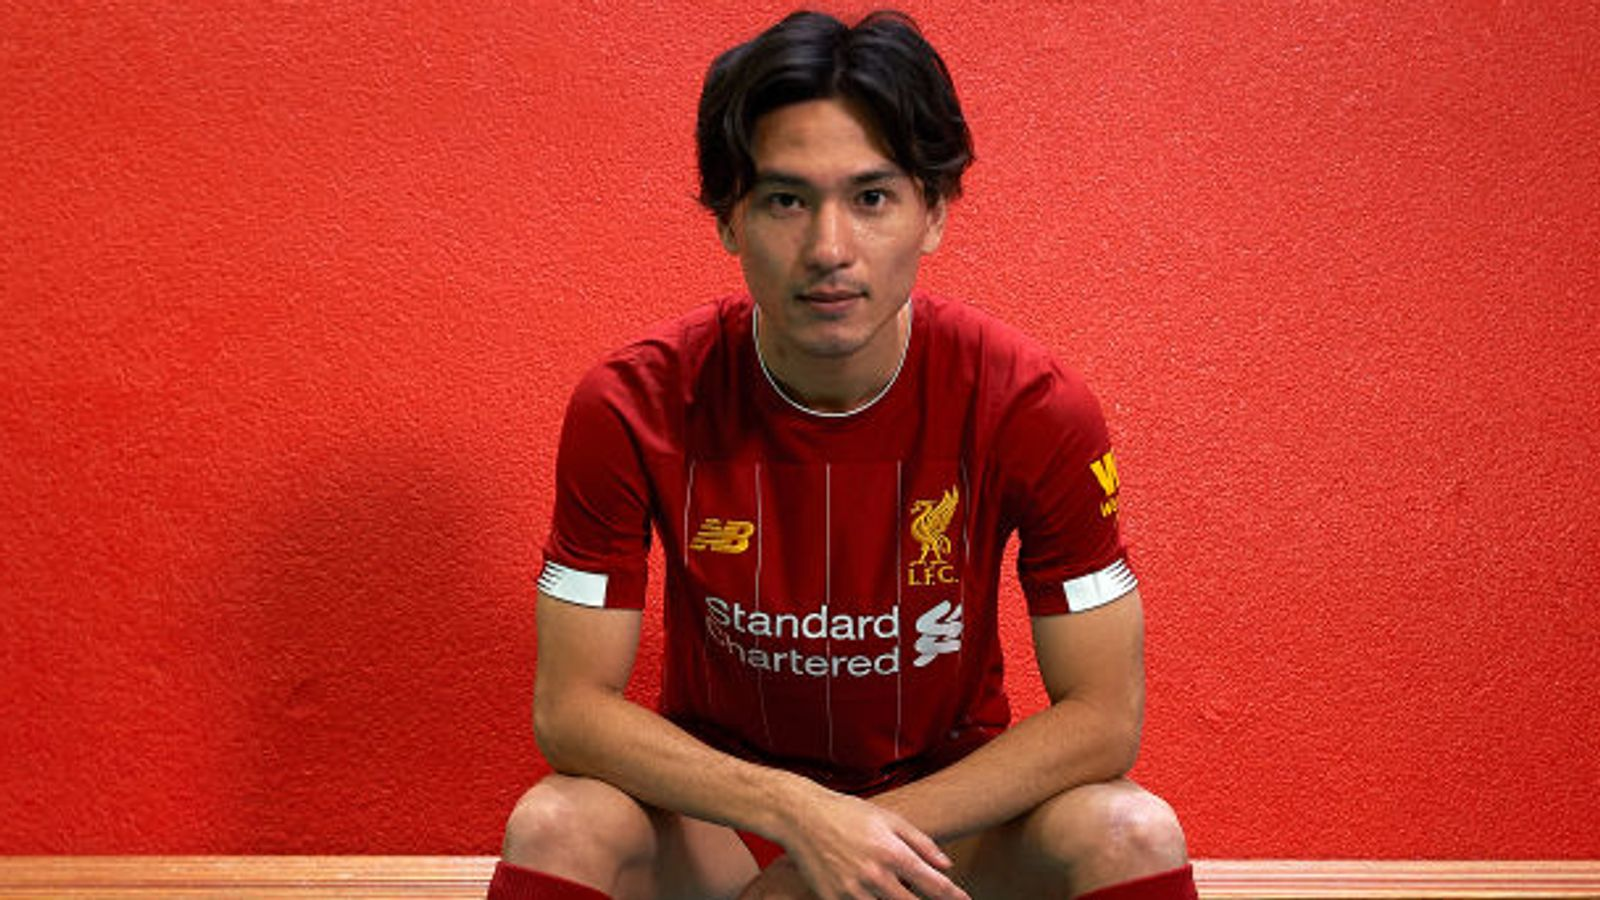 Takumi Minamino joins Liverpool: Who is Reds' new signing?